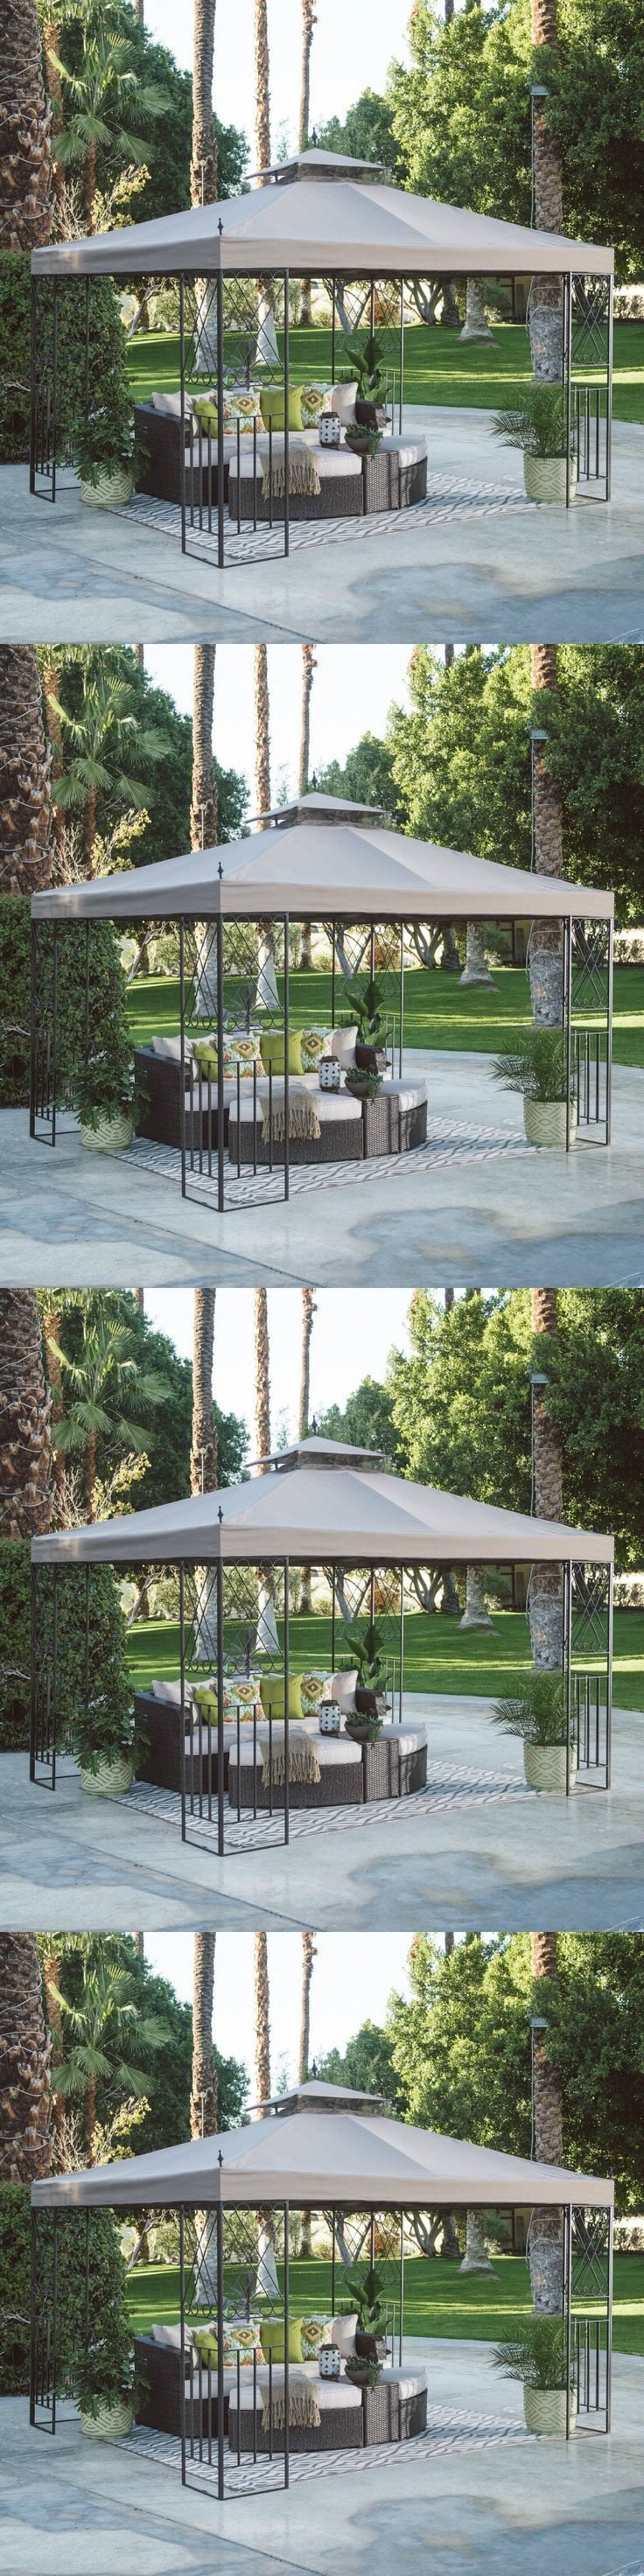 farm and garden: 10X12 Gazebo Canopy Deluxe Patio Outdoor Tent Shelter Backyard Garden Furniture -> BUY IT NOW ONLY: $249.99 on eBay!